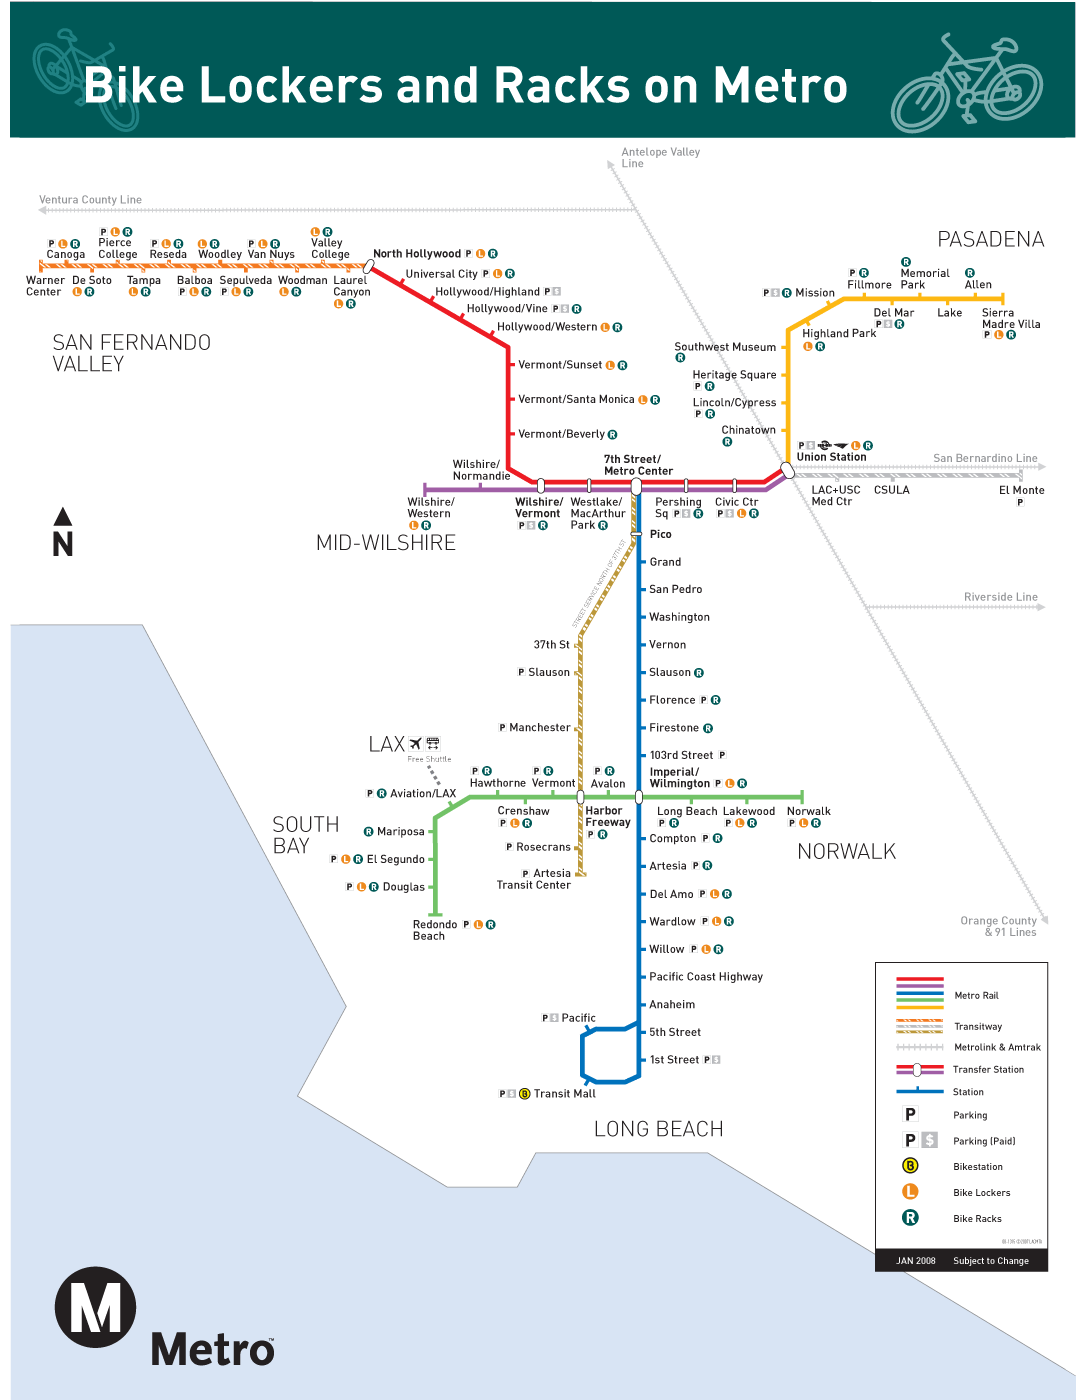 Los Angeles Metro Locer And Rack Bike Map